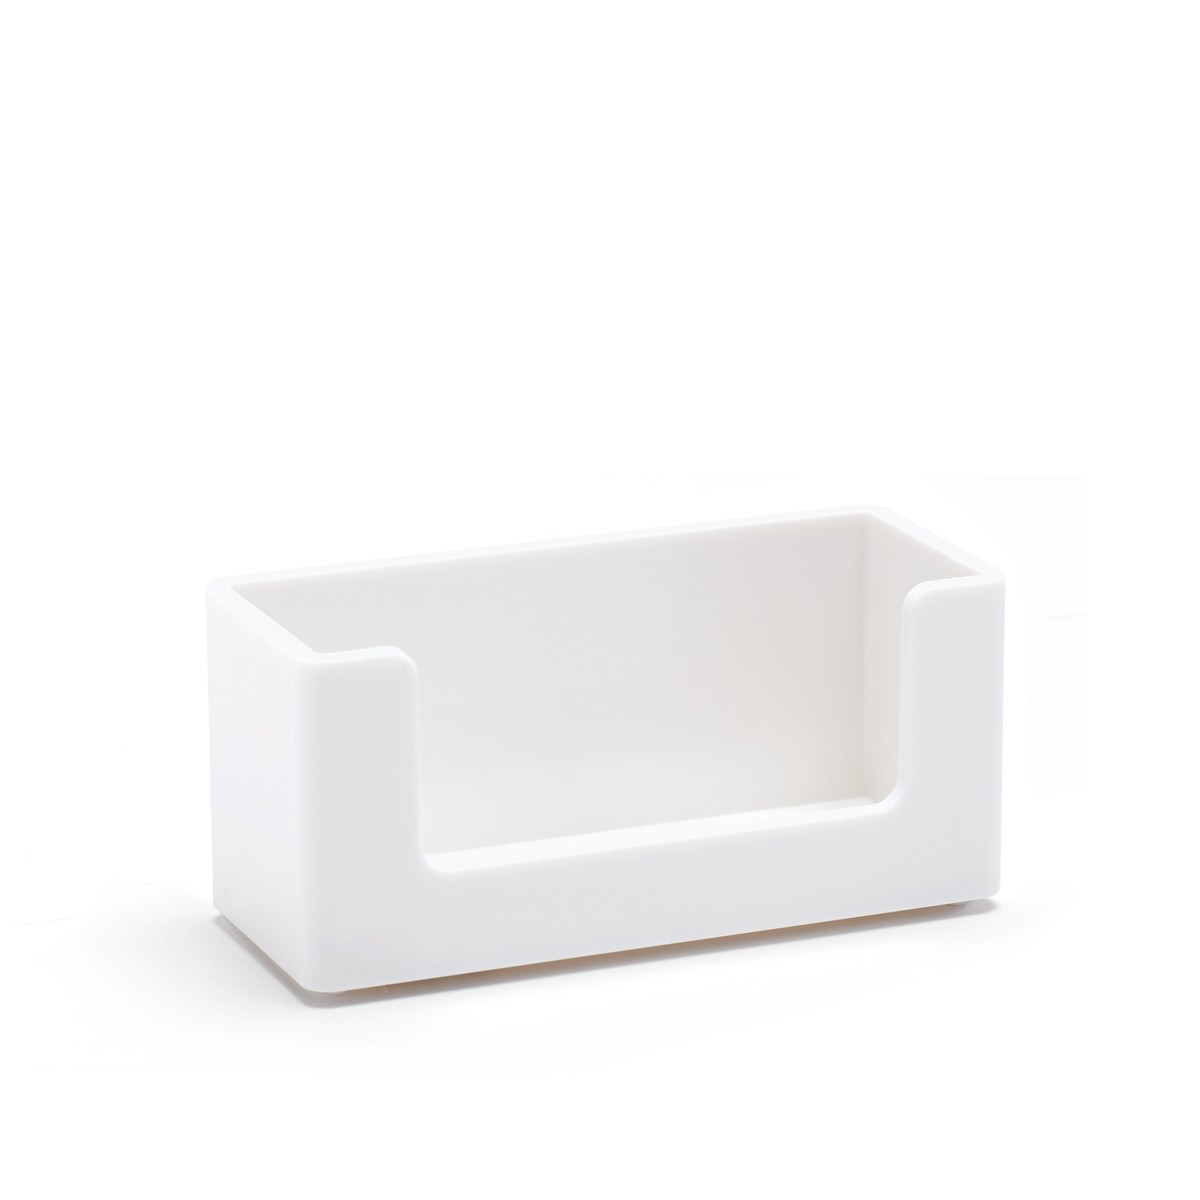 White business card holder desk accessories organization poppin images white business card holder reheart Choice Image